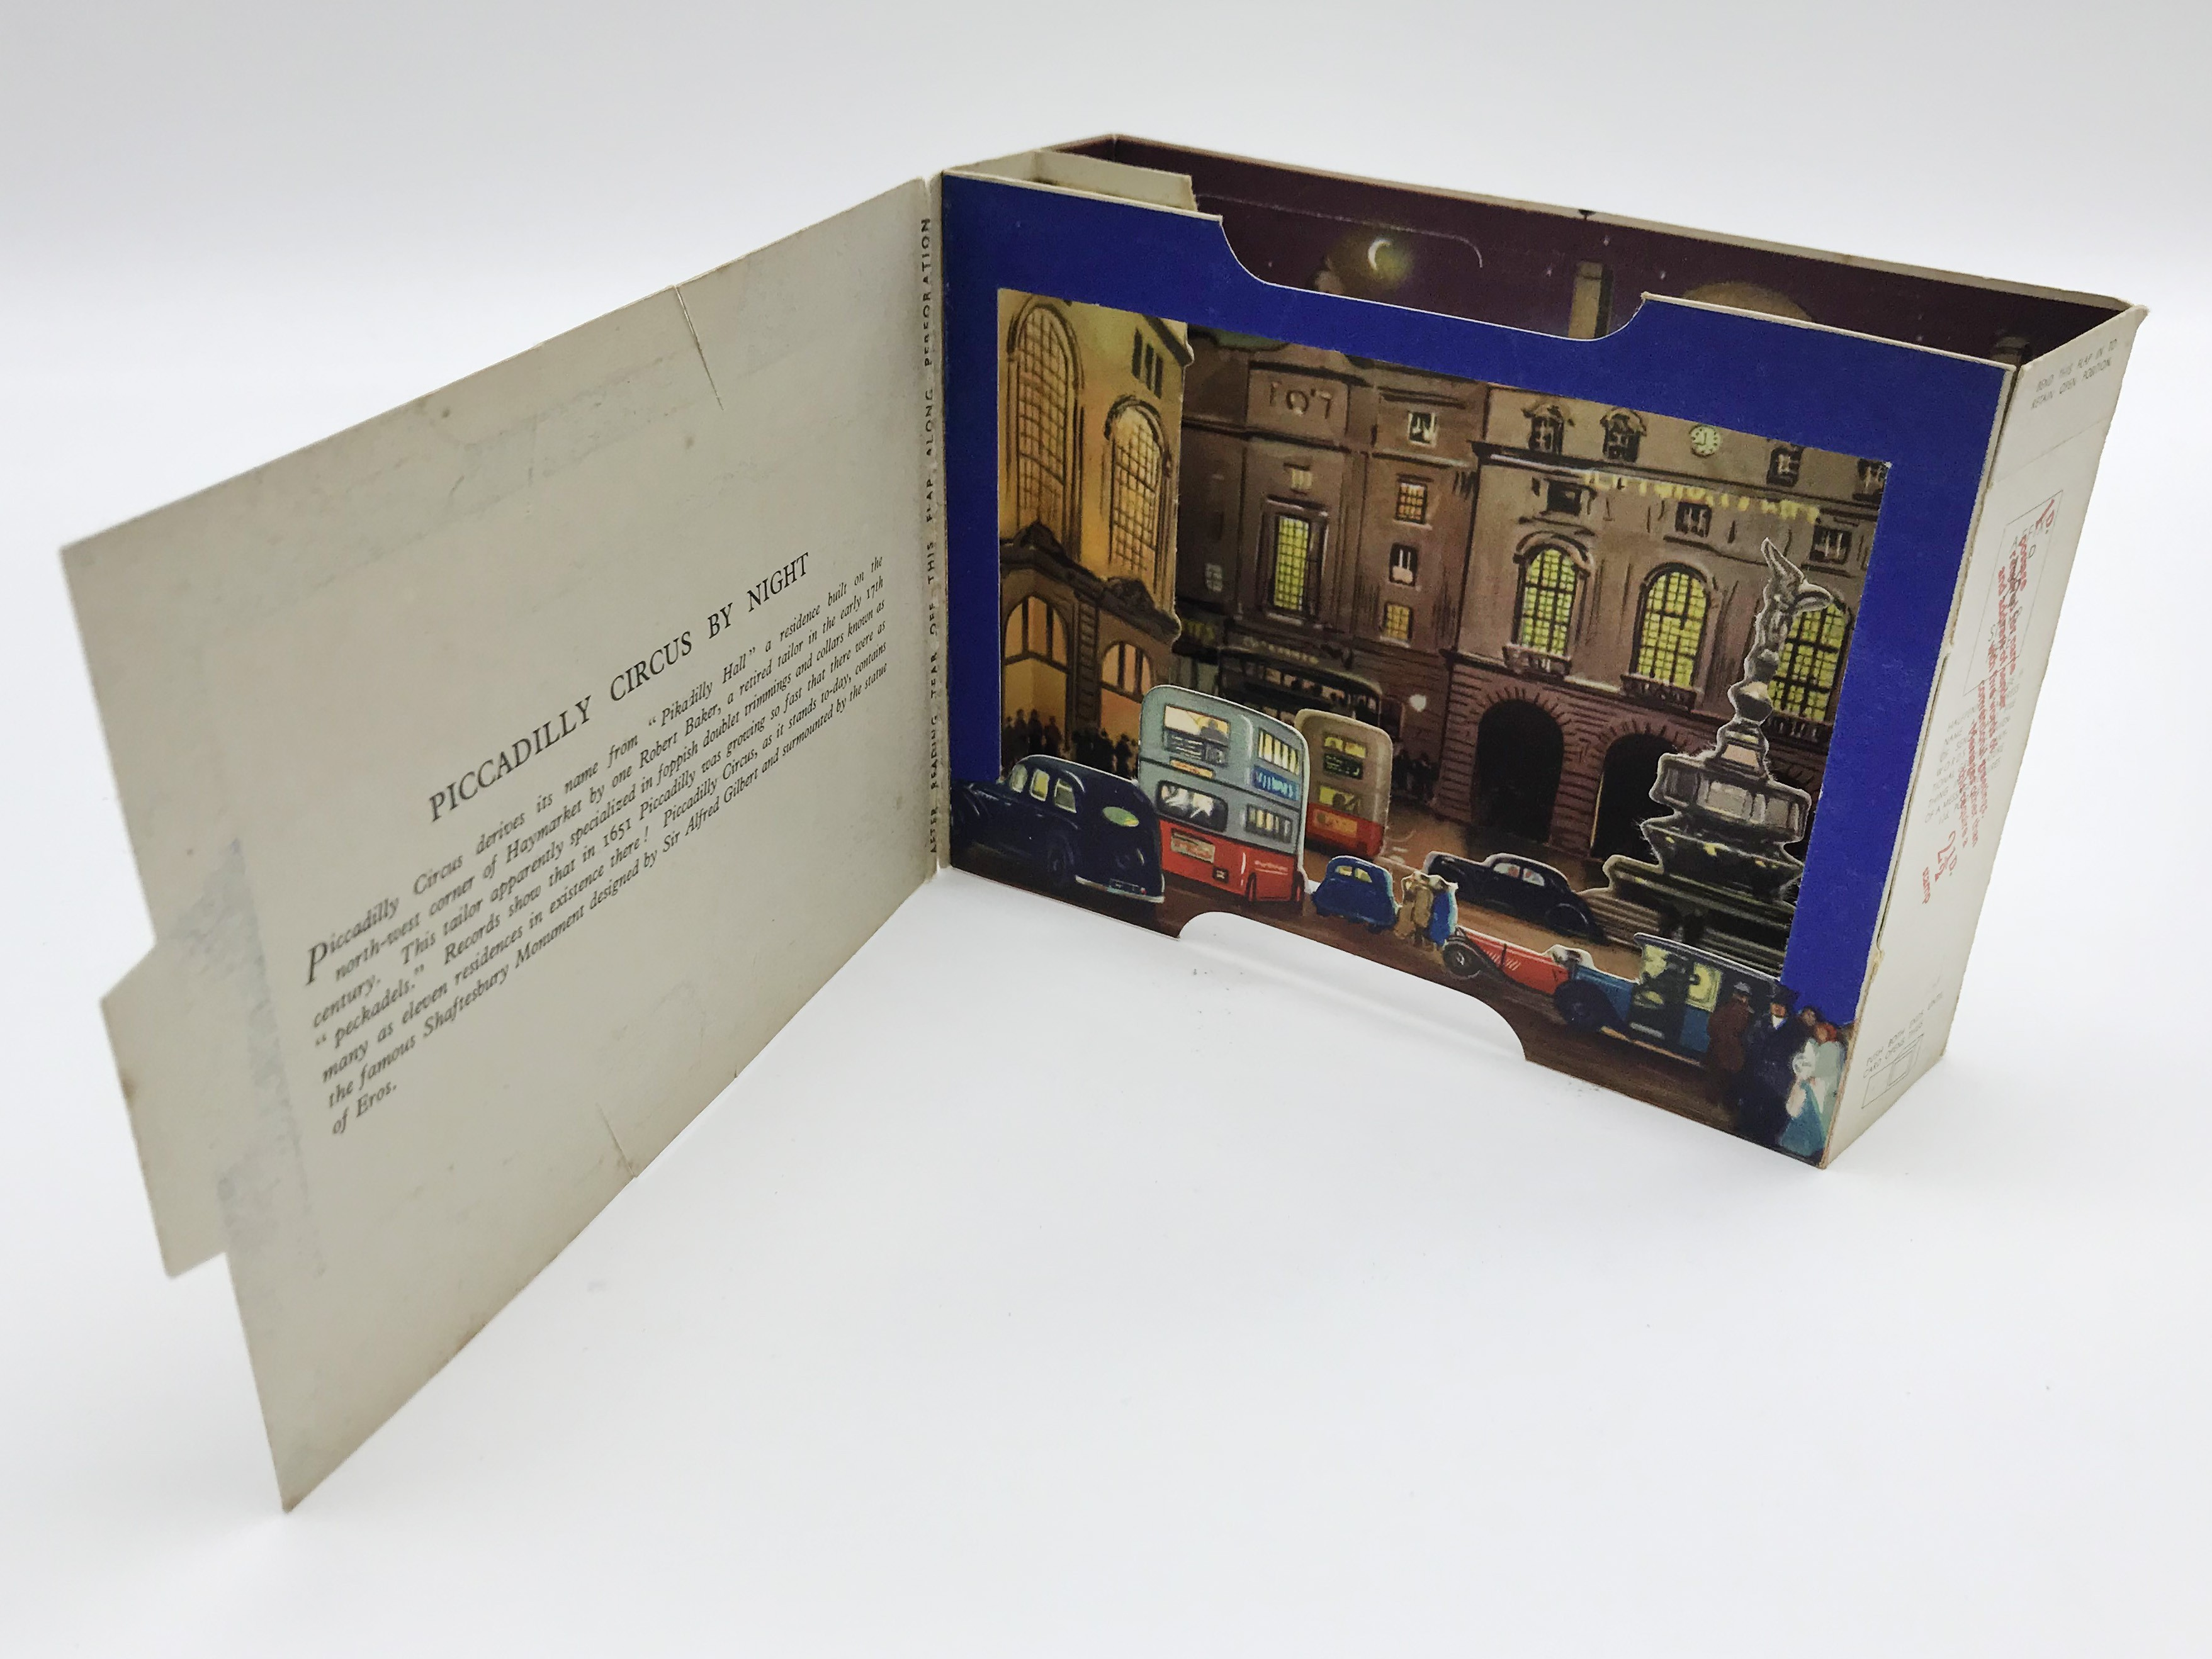 FIVE LONDON POSTCARDS - THE BRENT SERIES OF PANORAMIC VIEW CARDS - Image 10 of 13